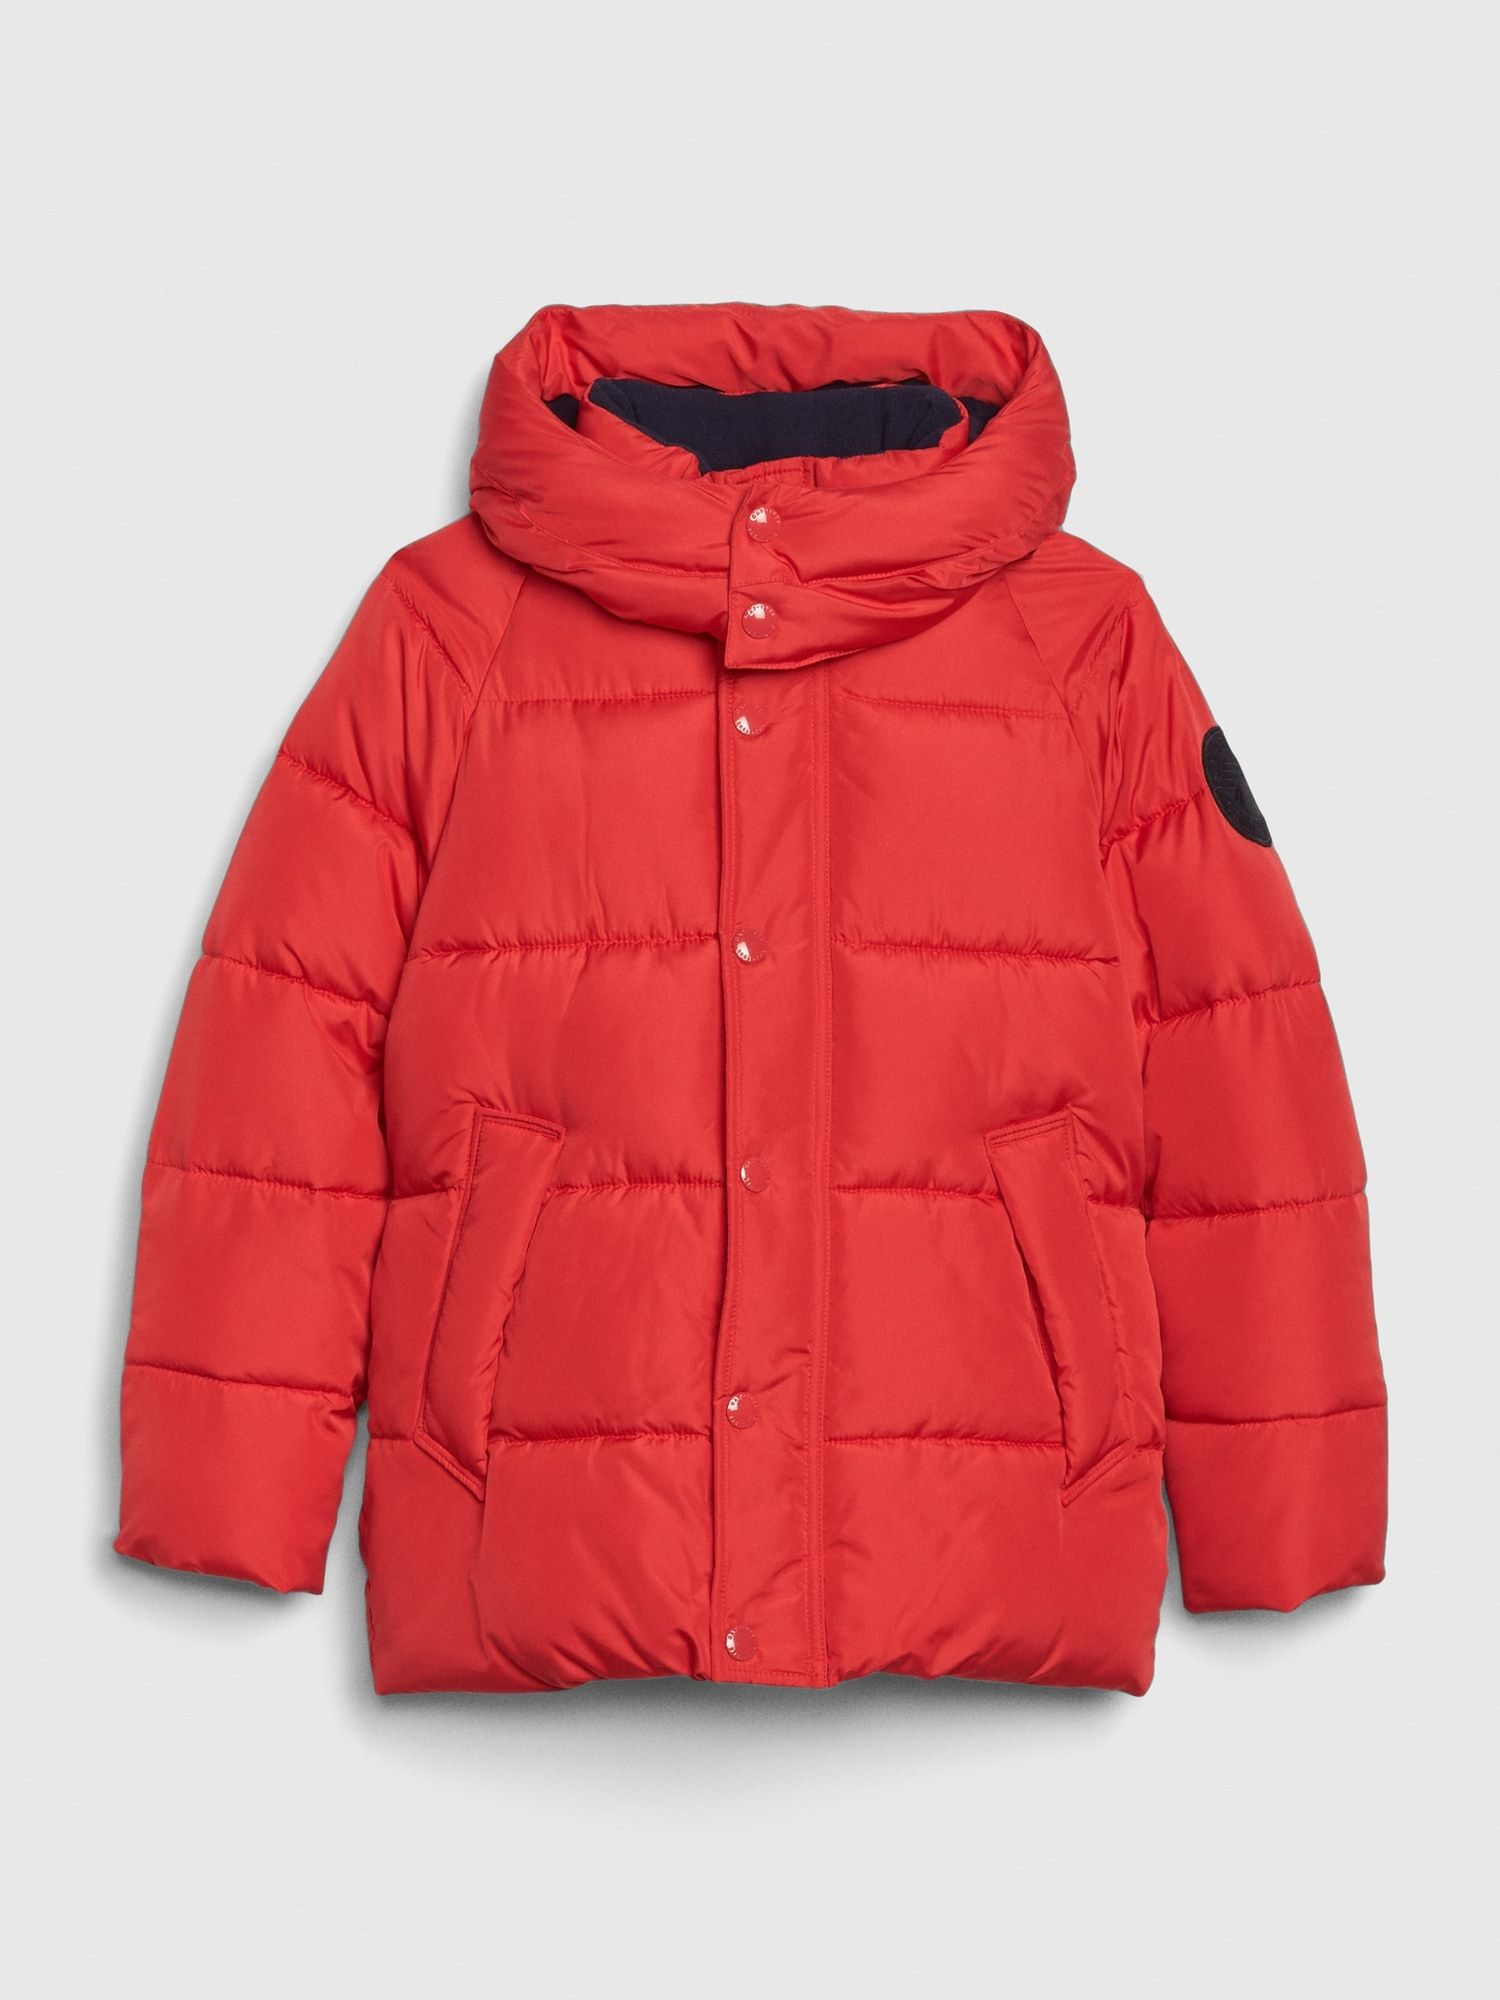 Pin By Javier On Details For Mens Puffer Parka Parka Winter Jackets [ 2000 x 1500 Pixel ]